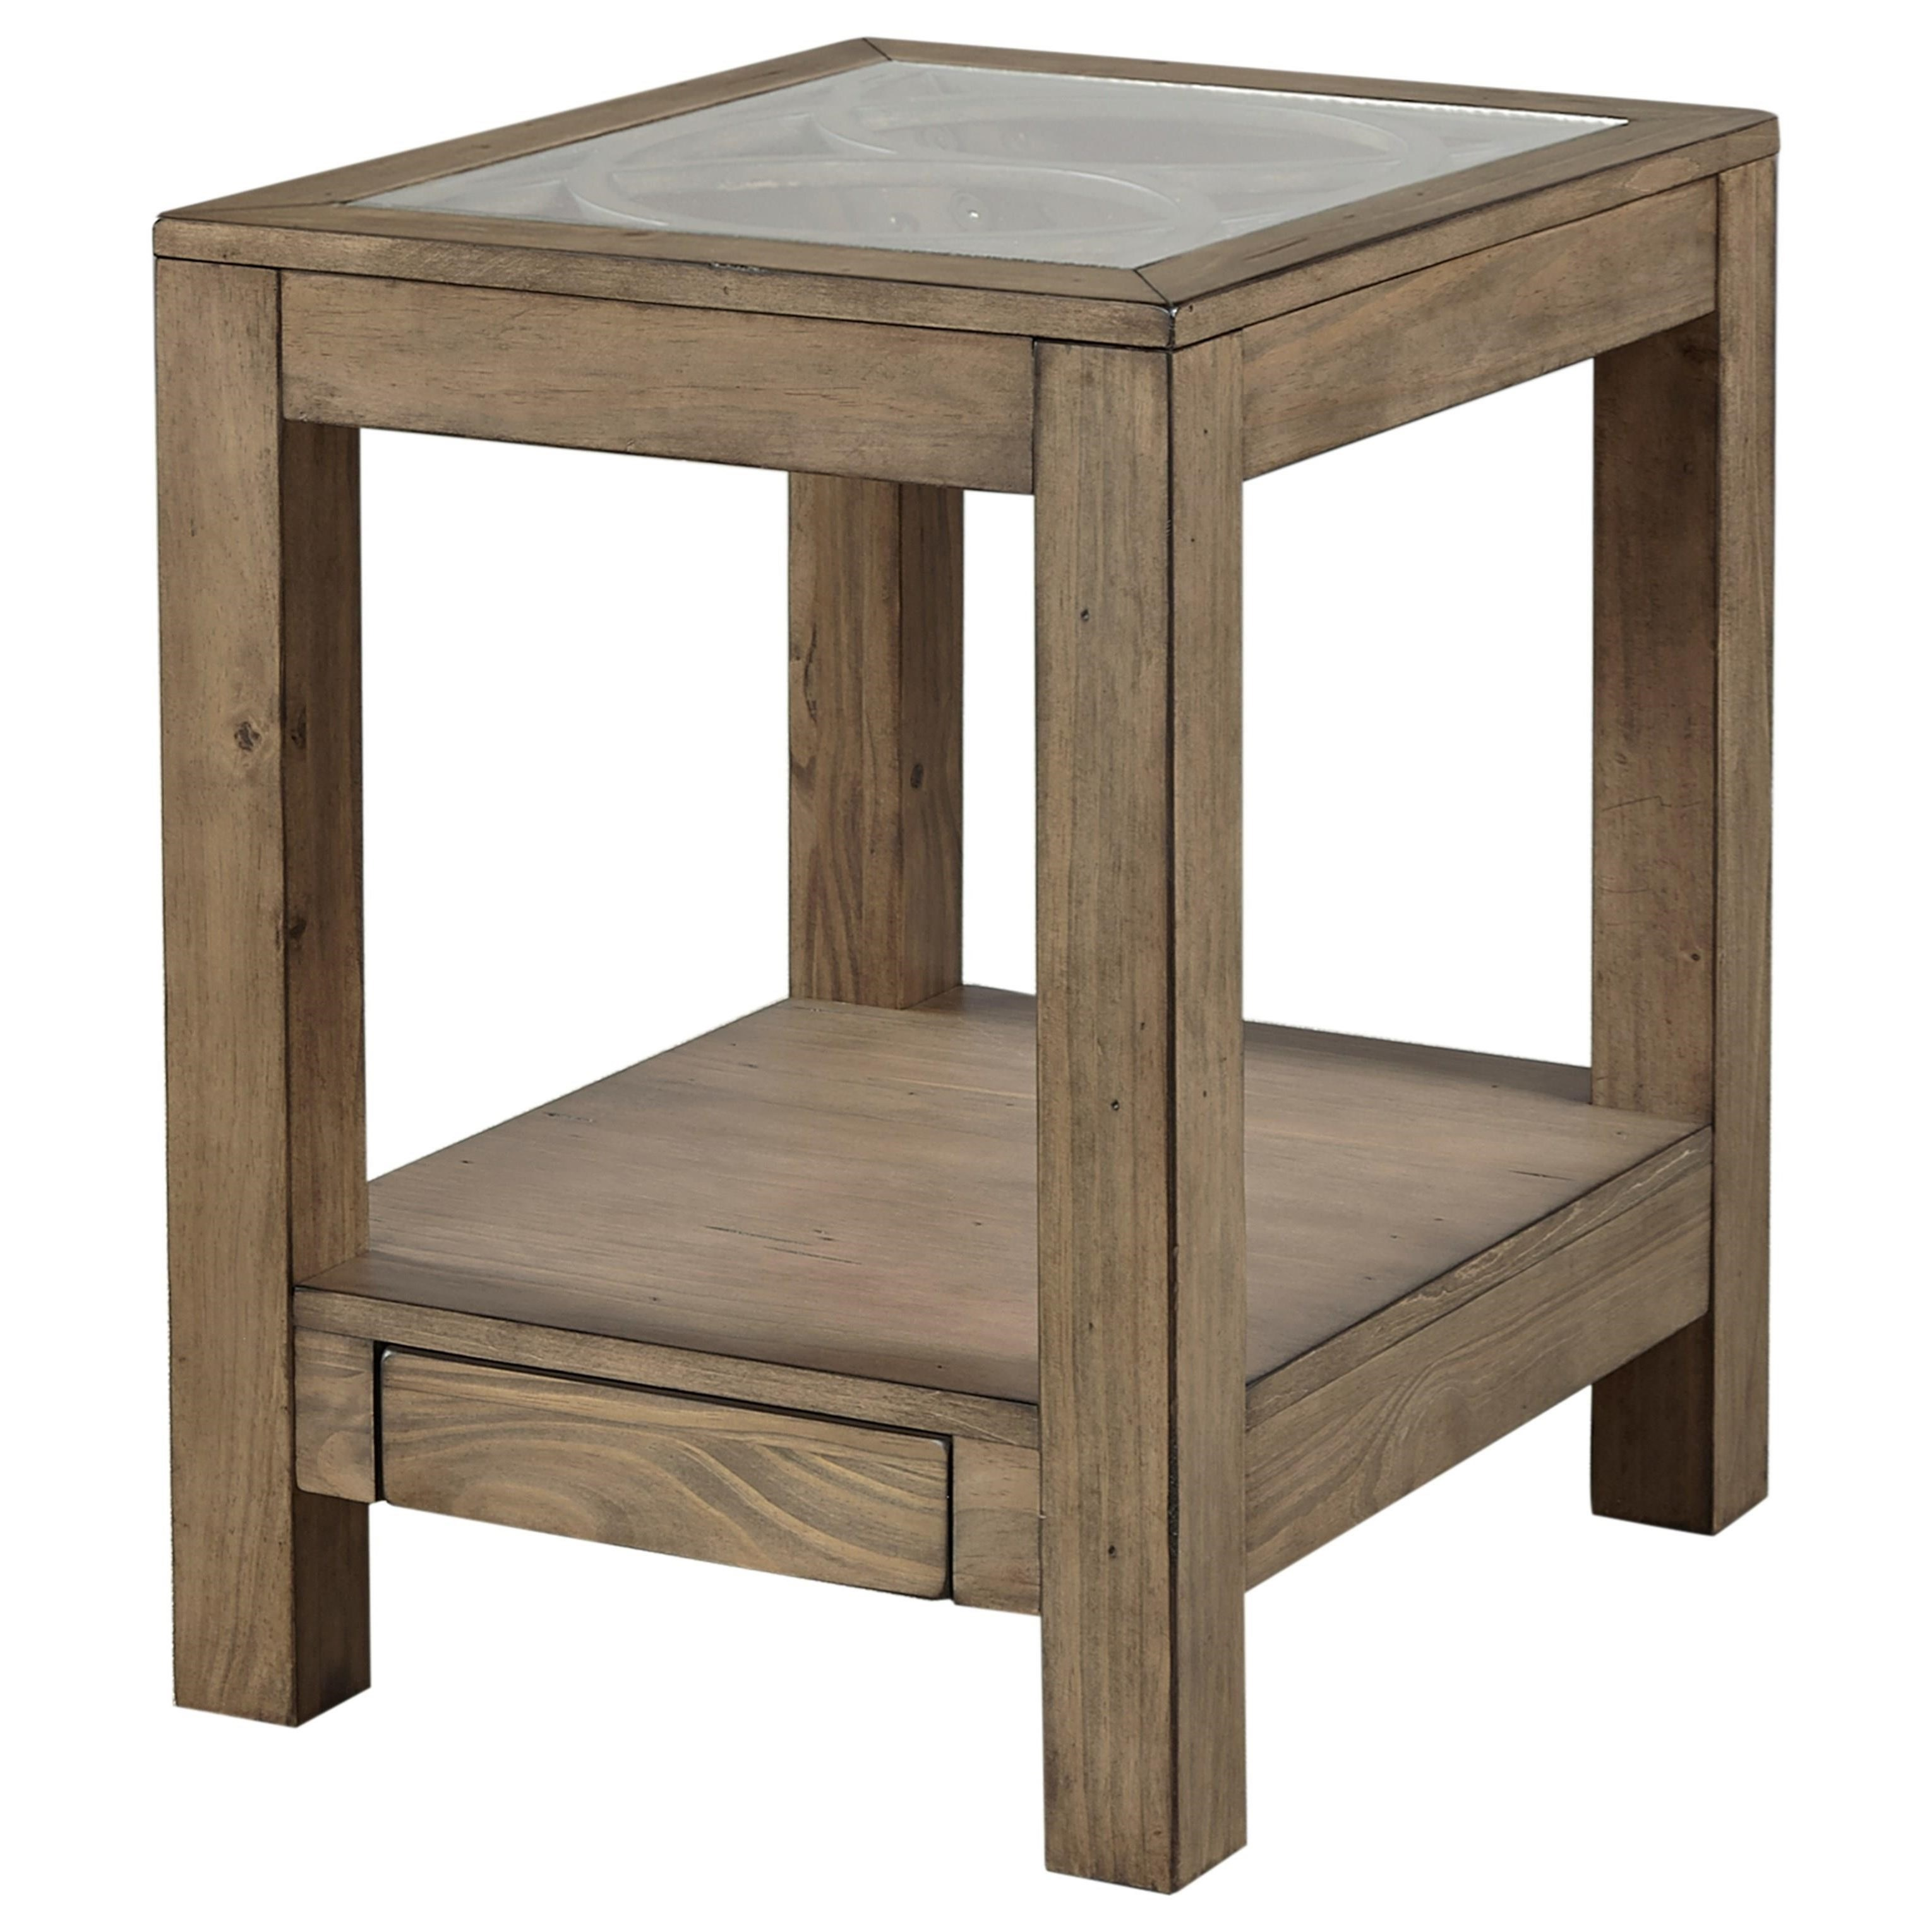 chair side tables with storage bedroom chaise aspenhome tildon i56 9135gl chairside table power